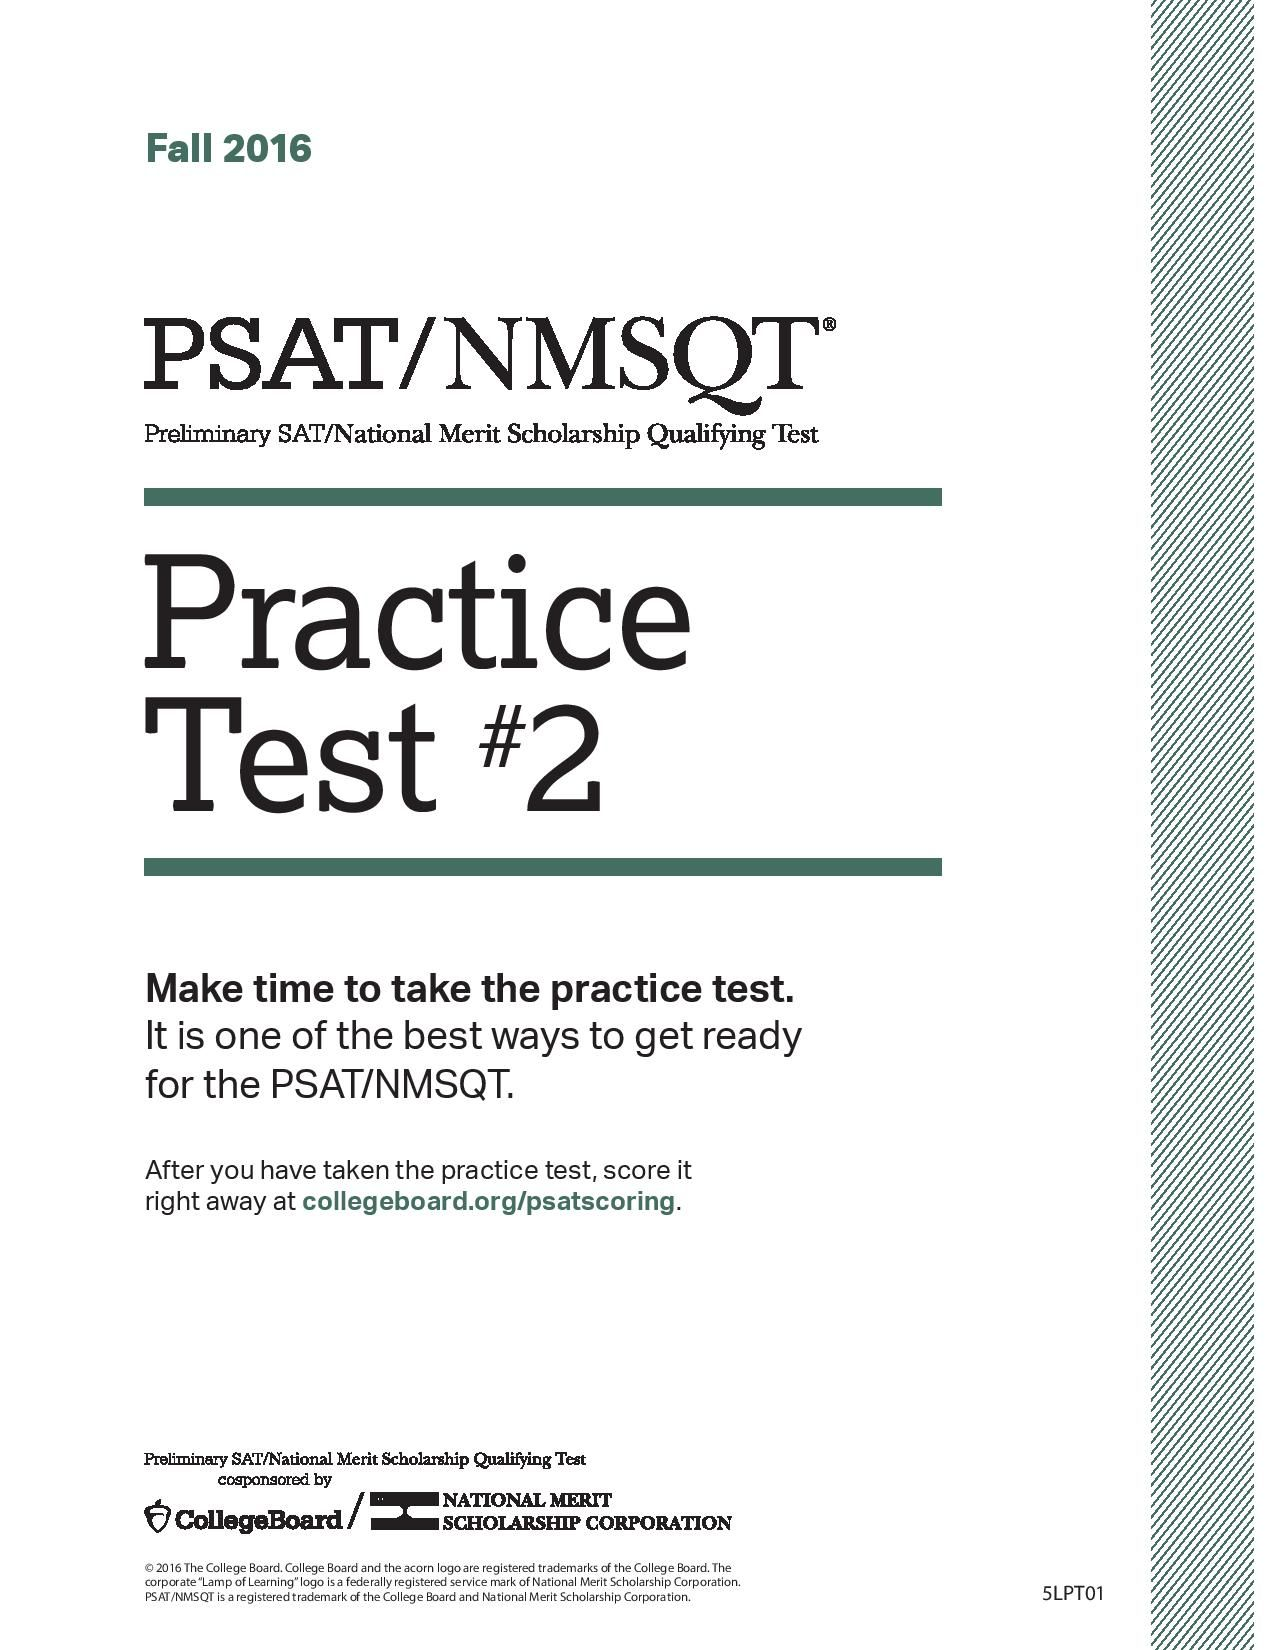 PSAT/NMSQT Practice #2: Click link for full download